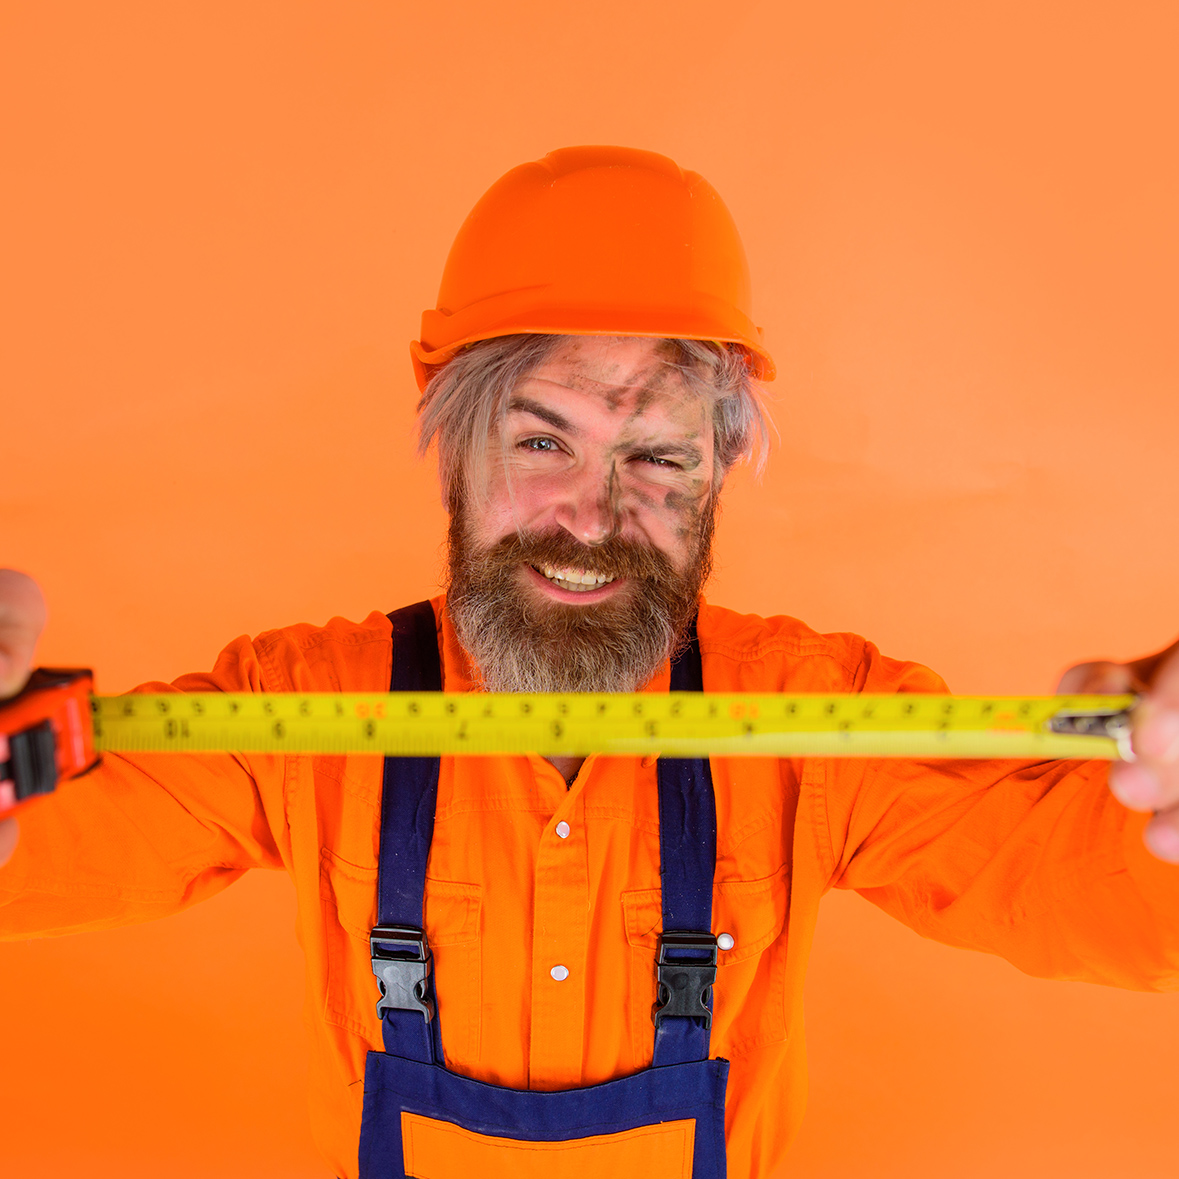 Builder with measure tape. Selective focus. Measuring device. Construction worker. Worker use tape measure. Builder equipment. Bearded builder in protective helmet. Repair tools